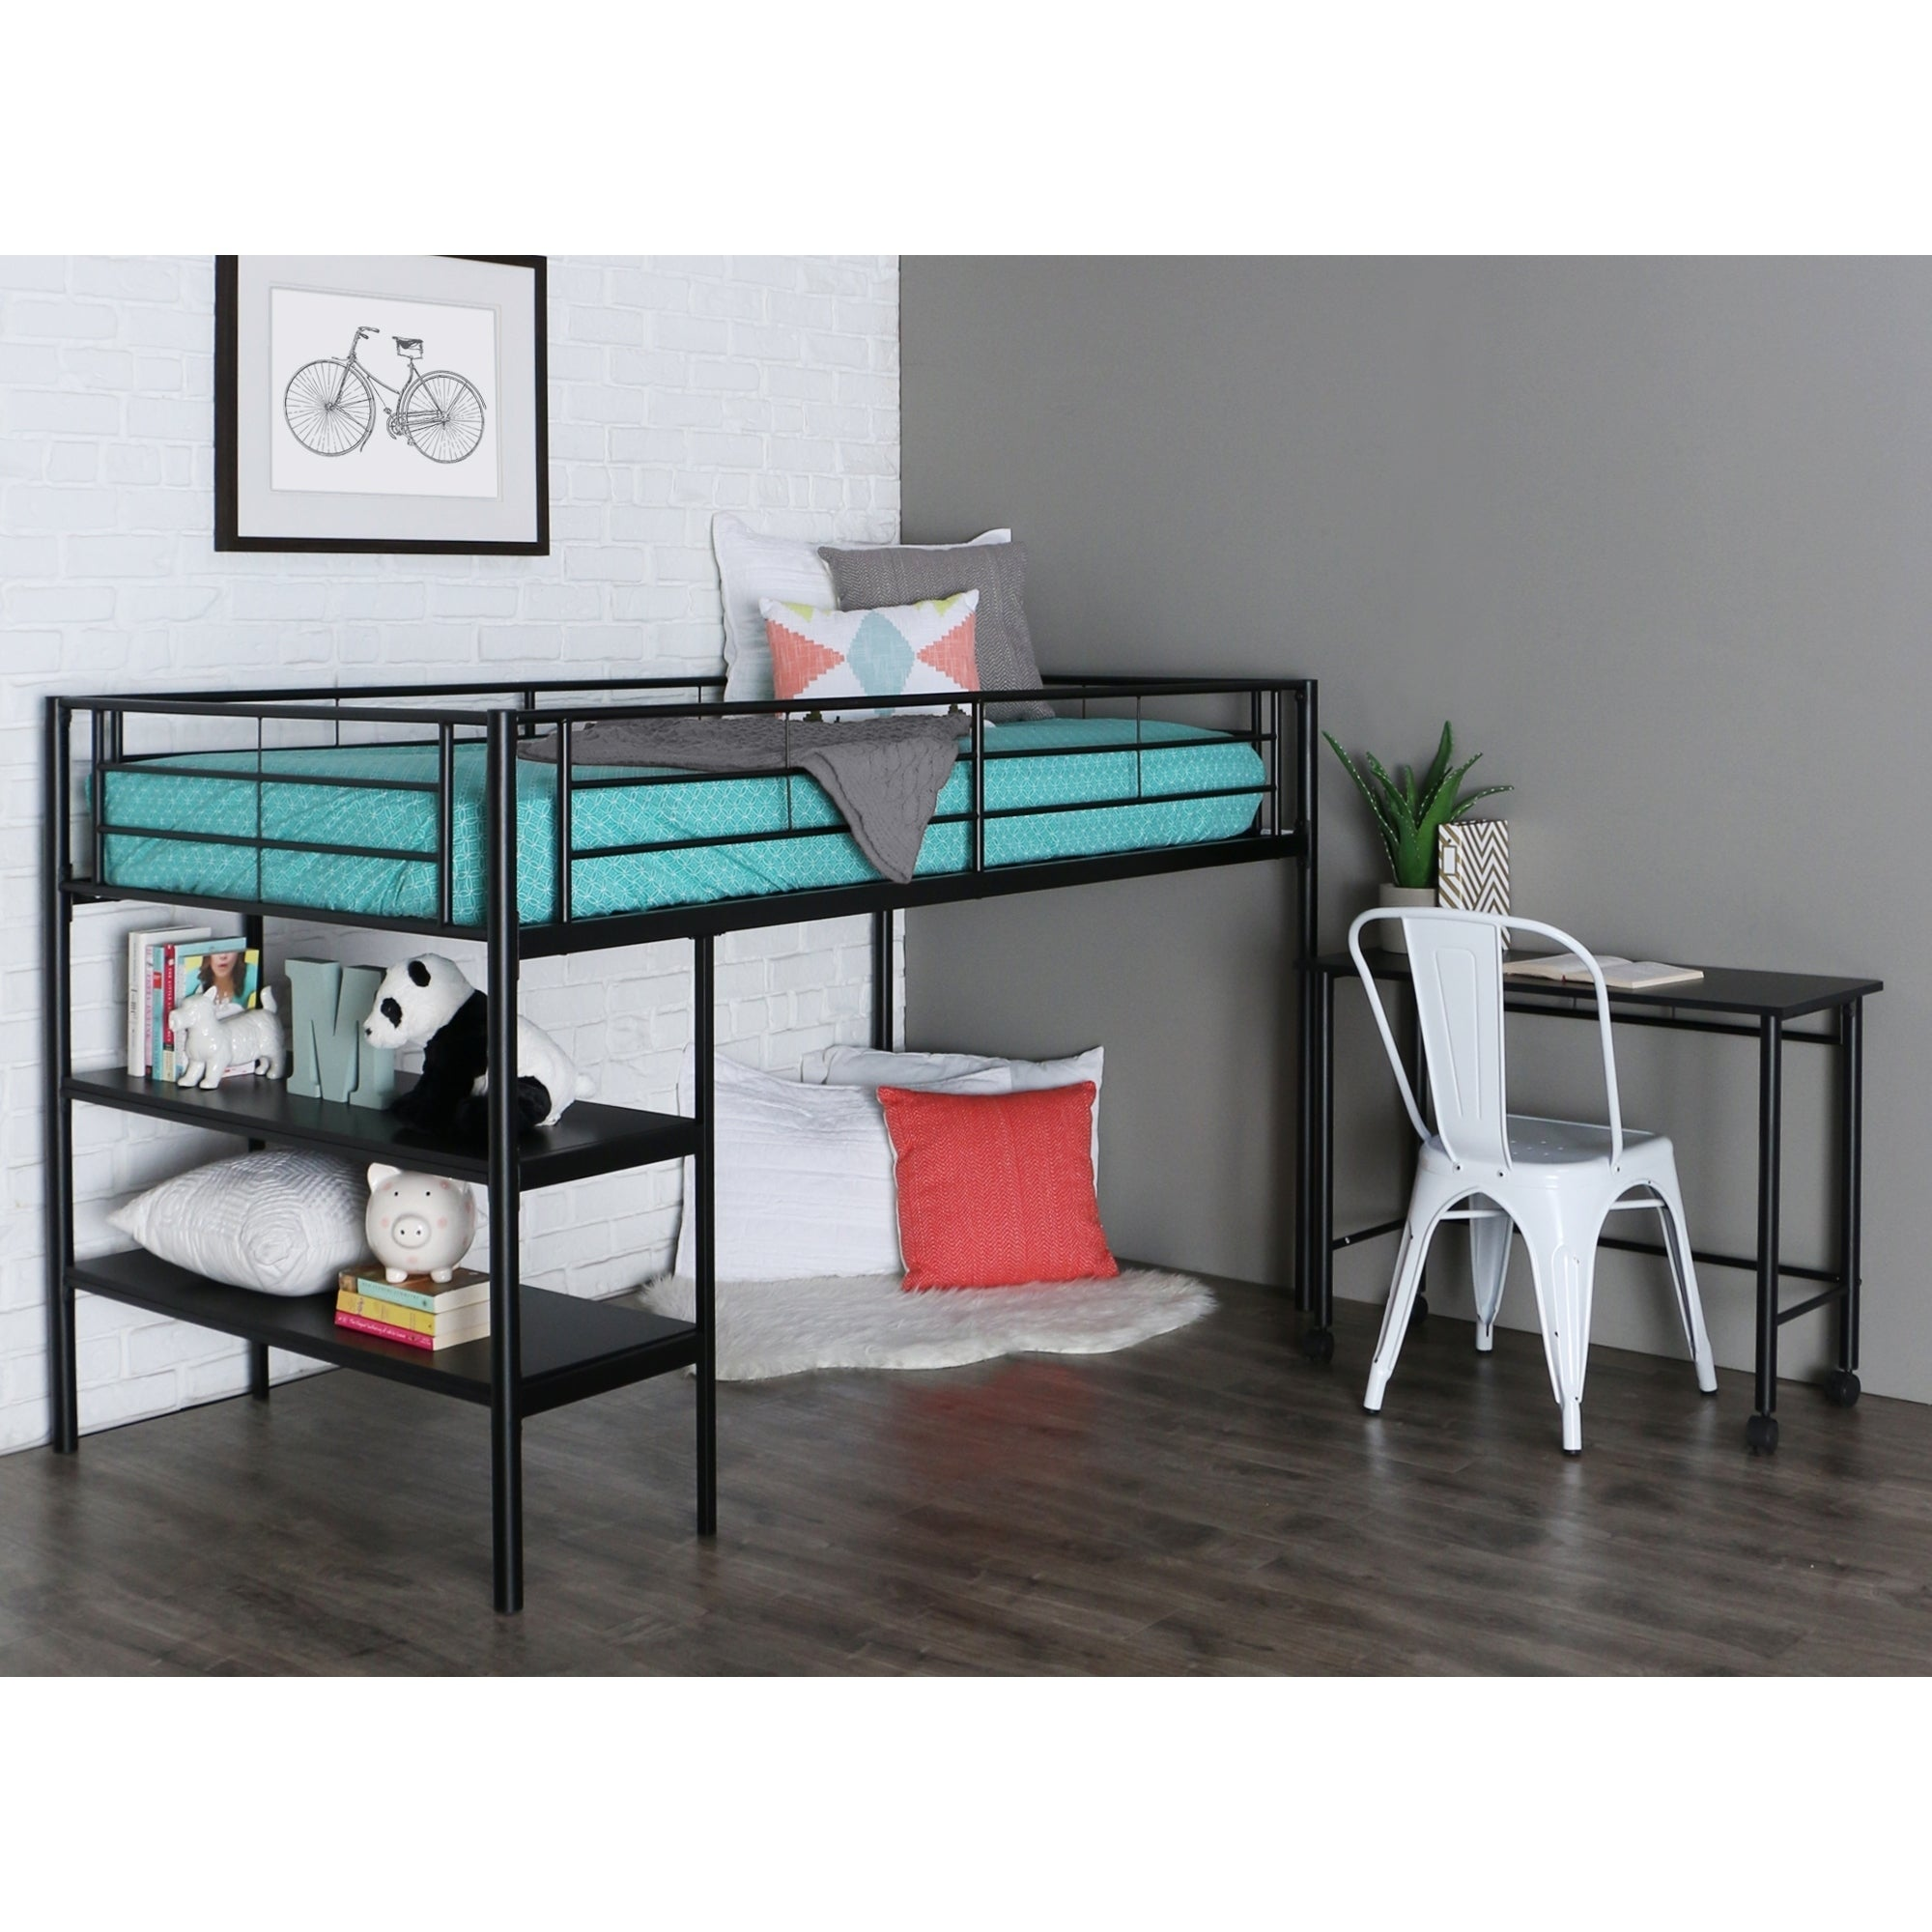 cfm product hayneedle wesley bed master roundtubetwinoverfullbunkbedsilver over silver full duro twin desk loft bunk with